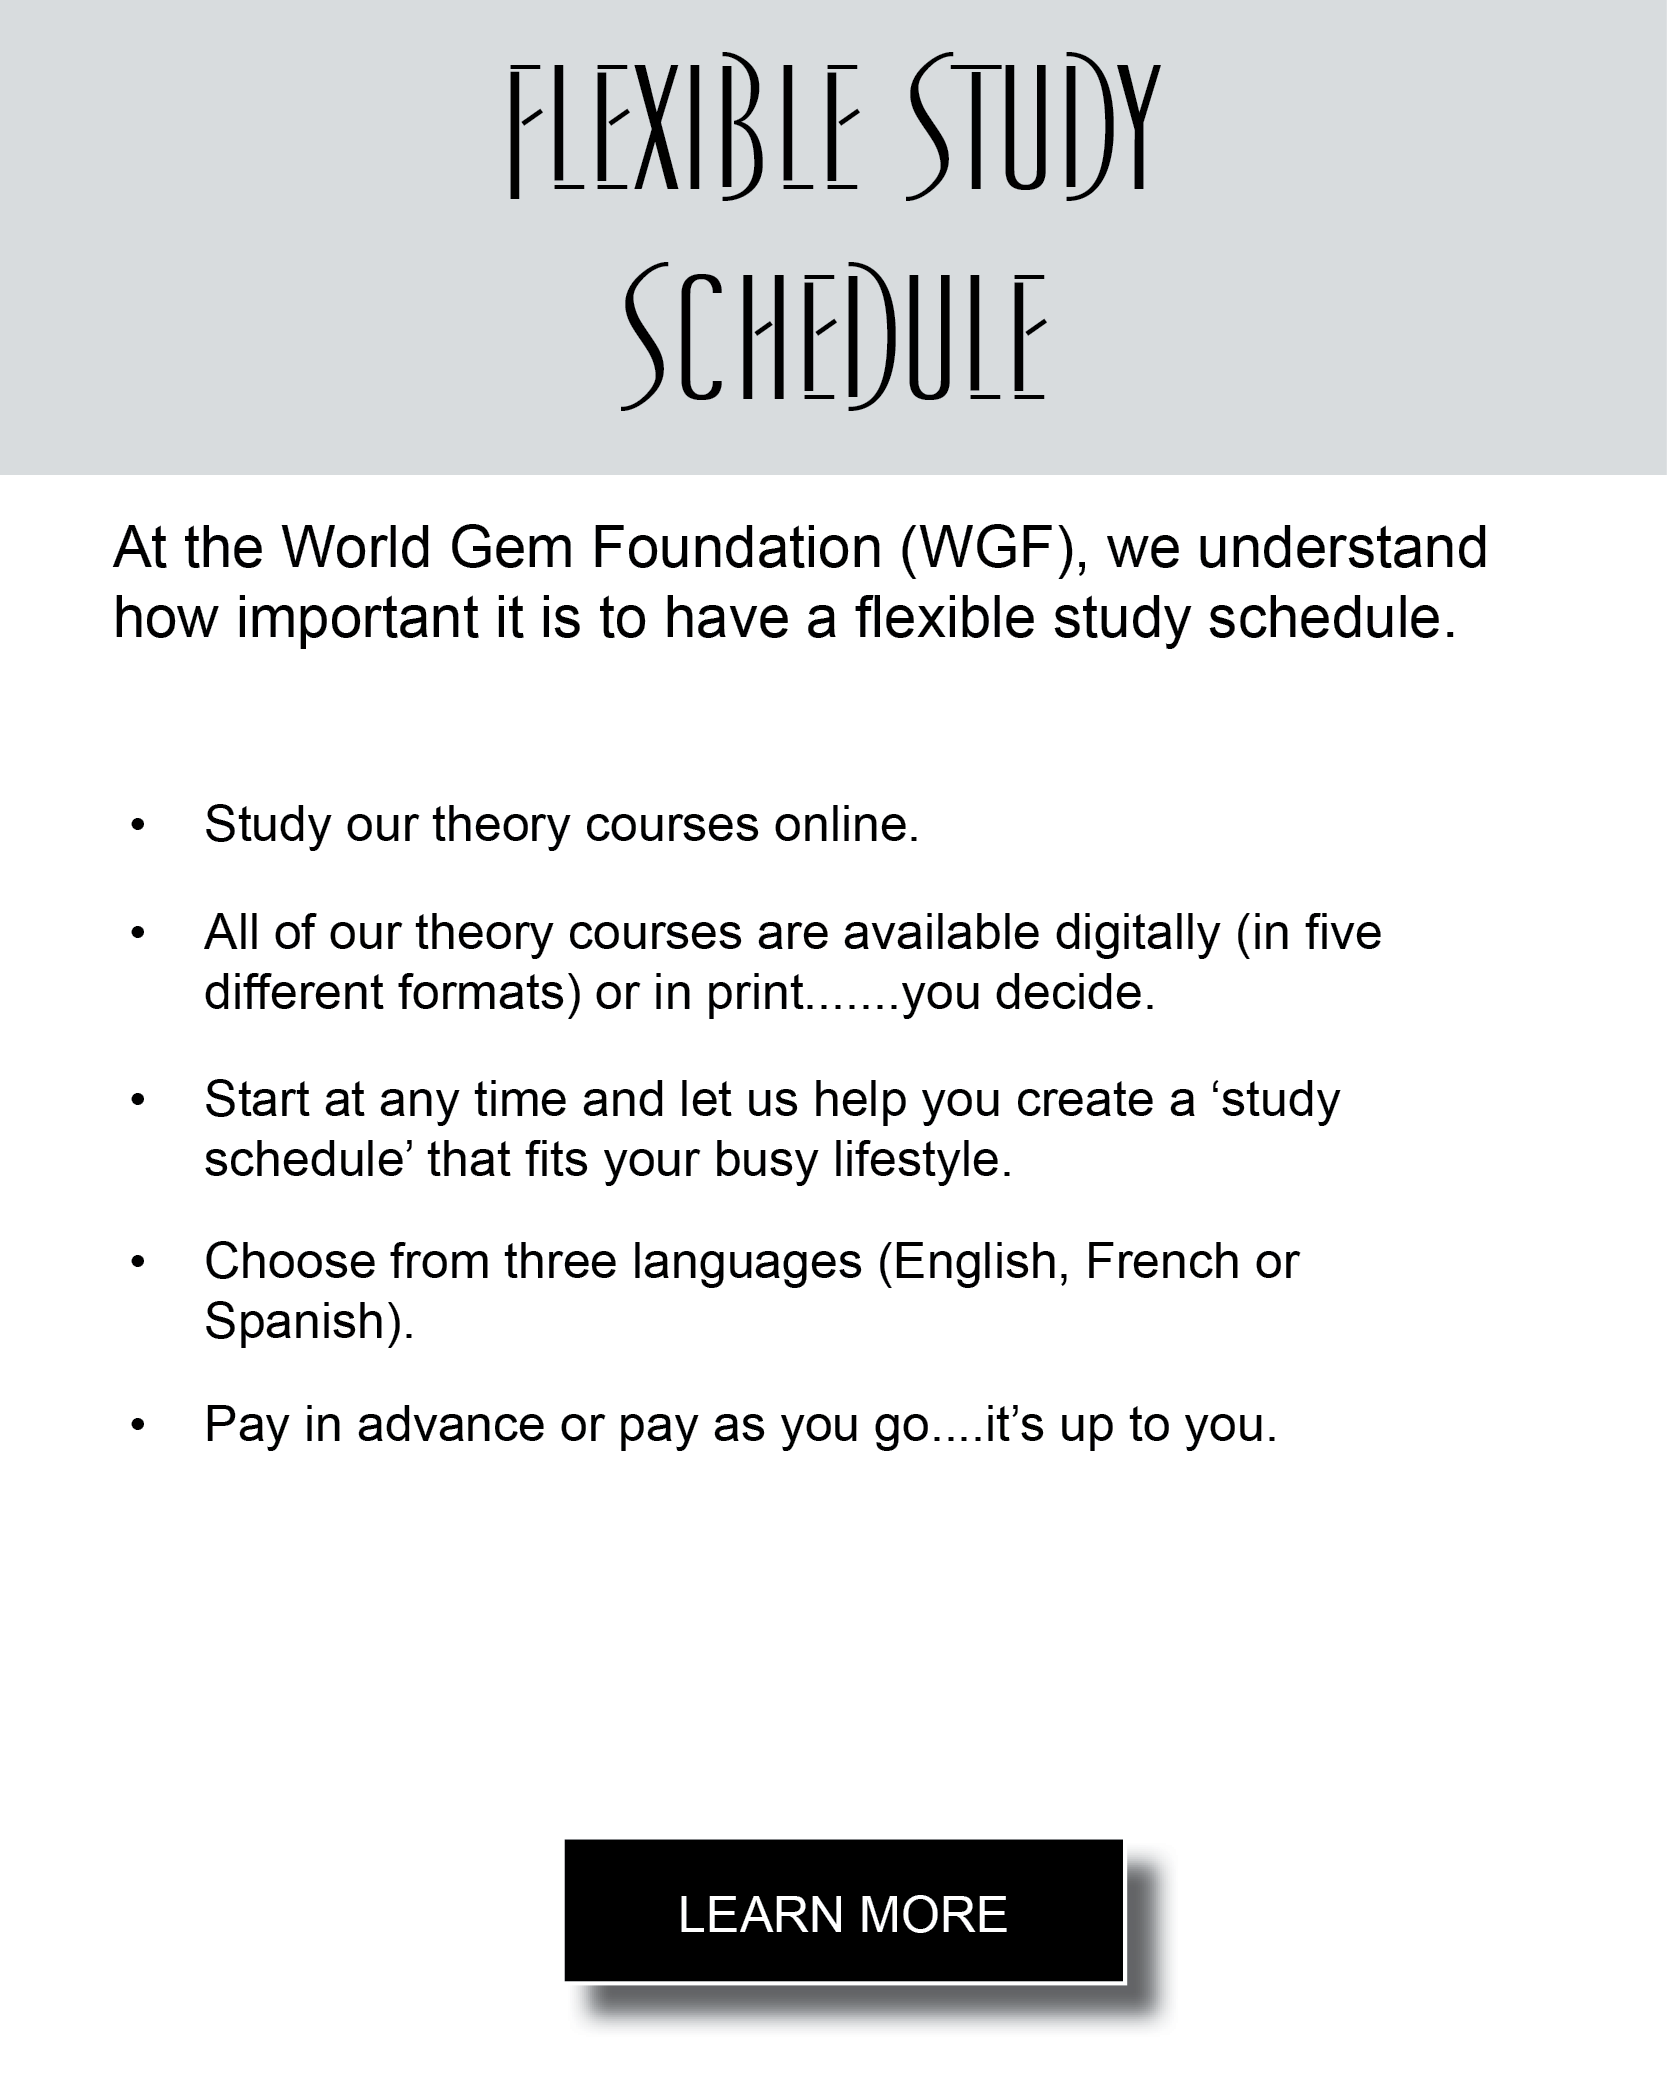 Flexible Study Schedule